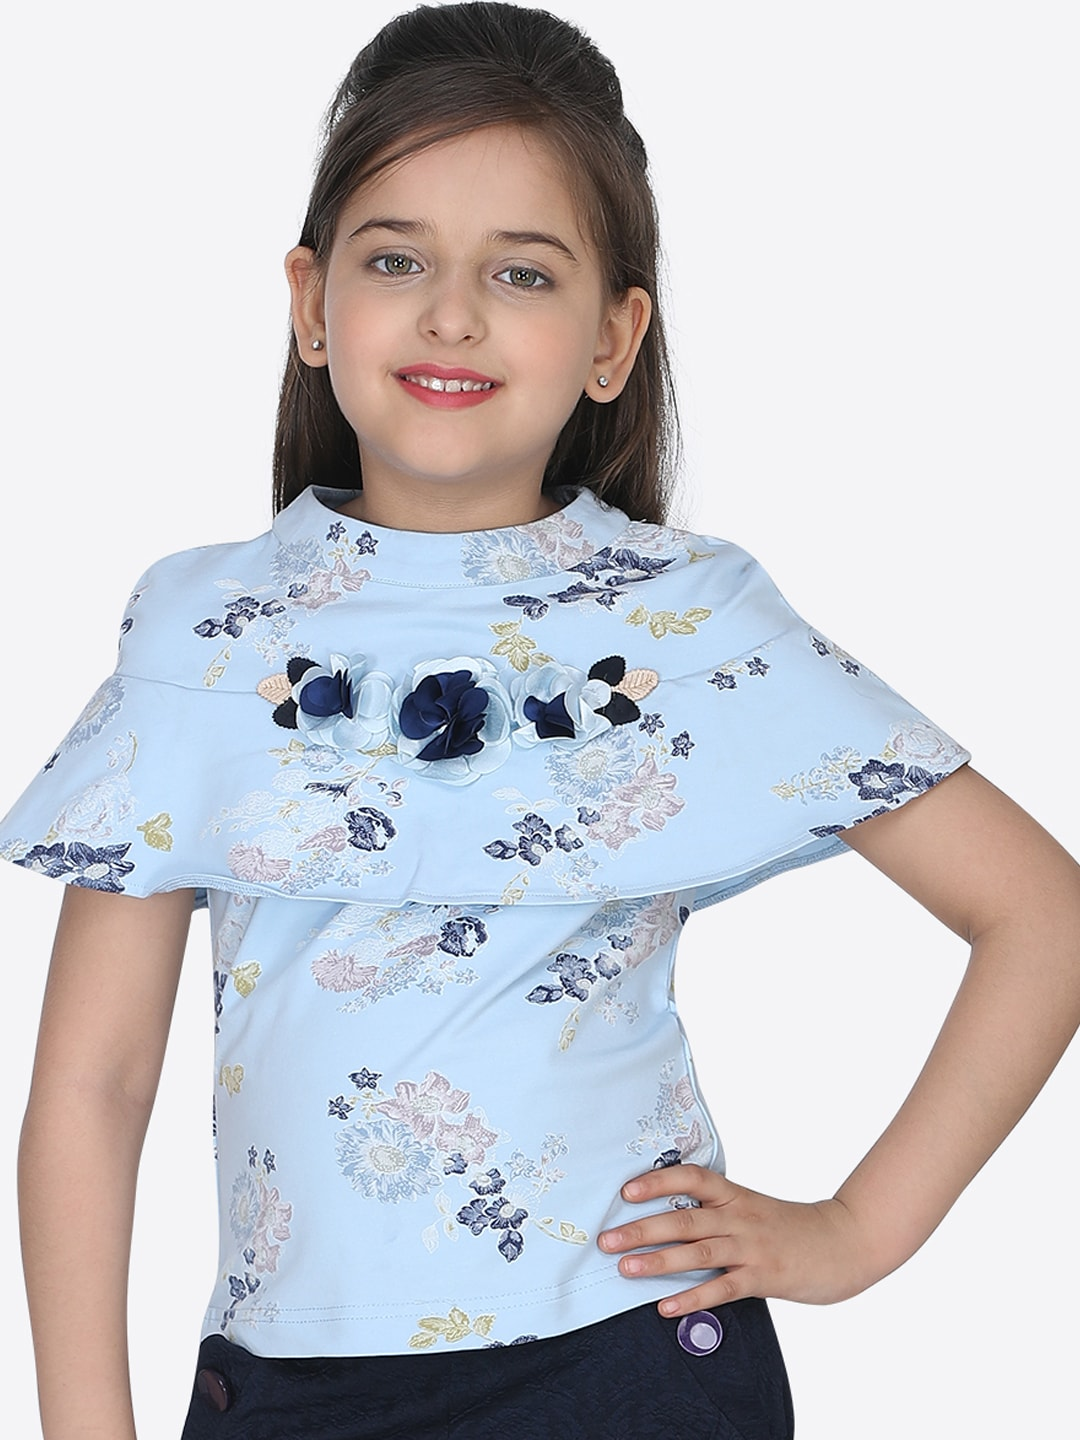 5090ff84996 Kids Dresses - Buy Kids Clothing Online in India